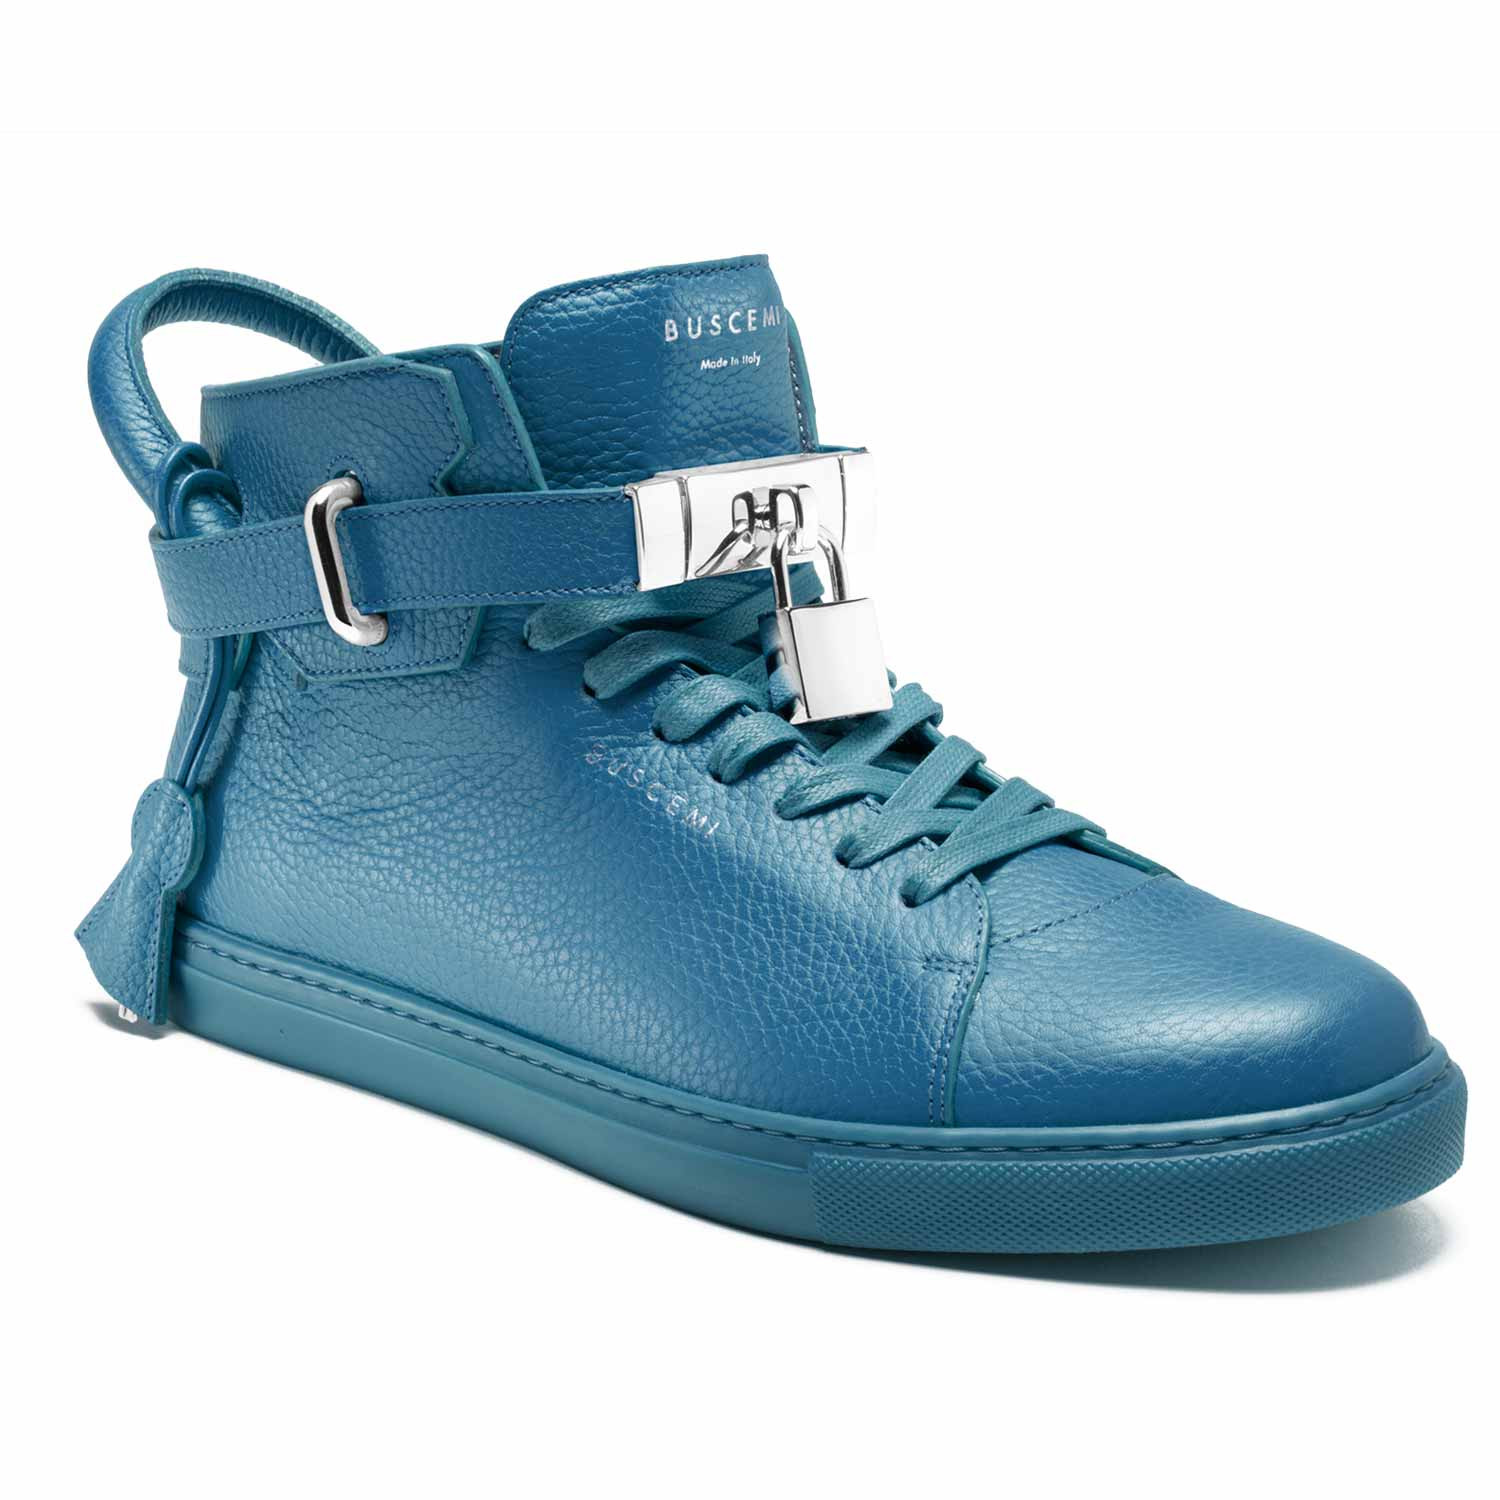 Buscemi Shoes Price In Rands